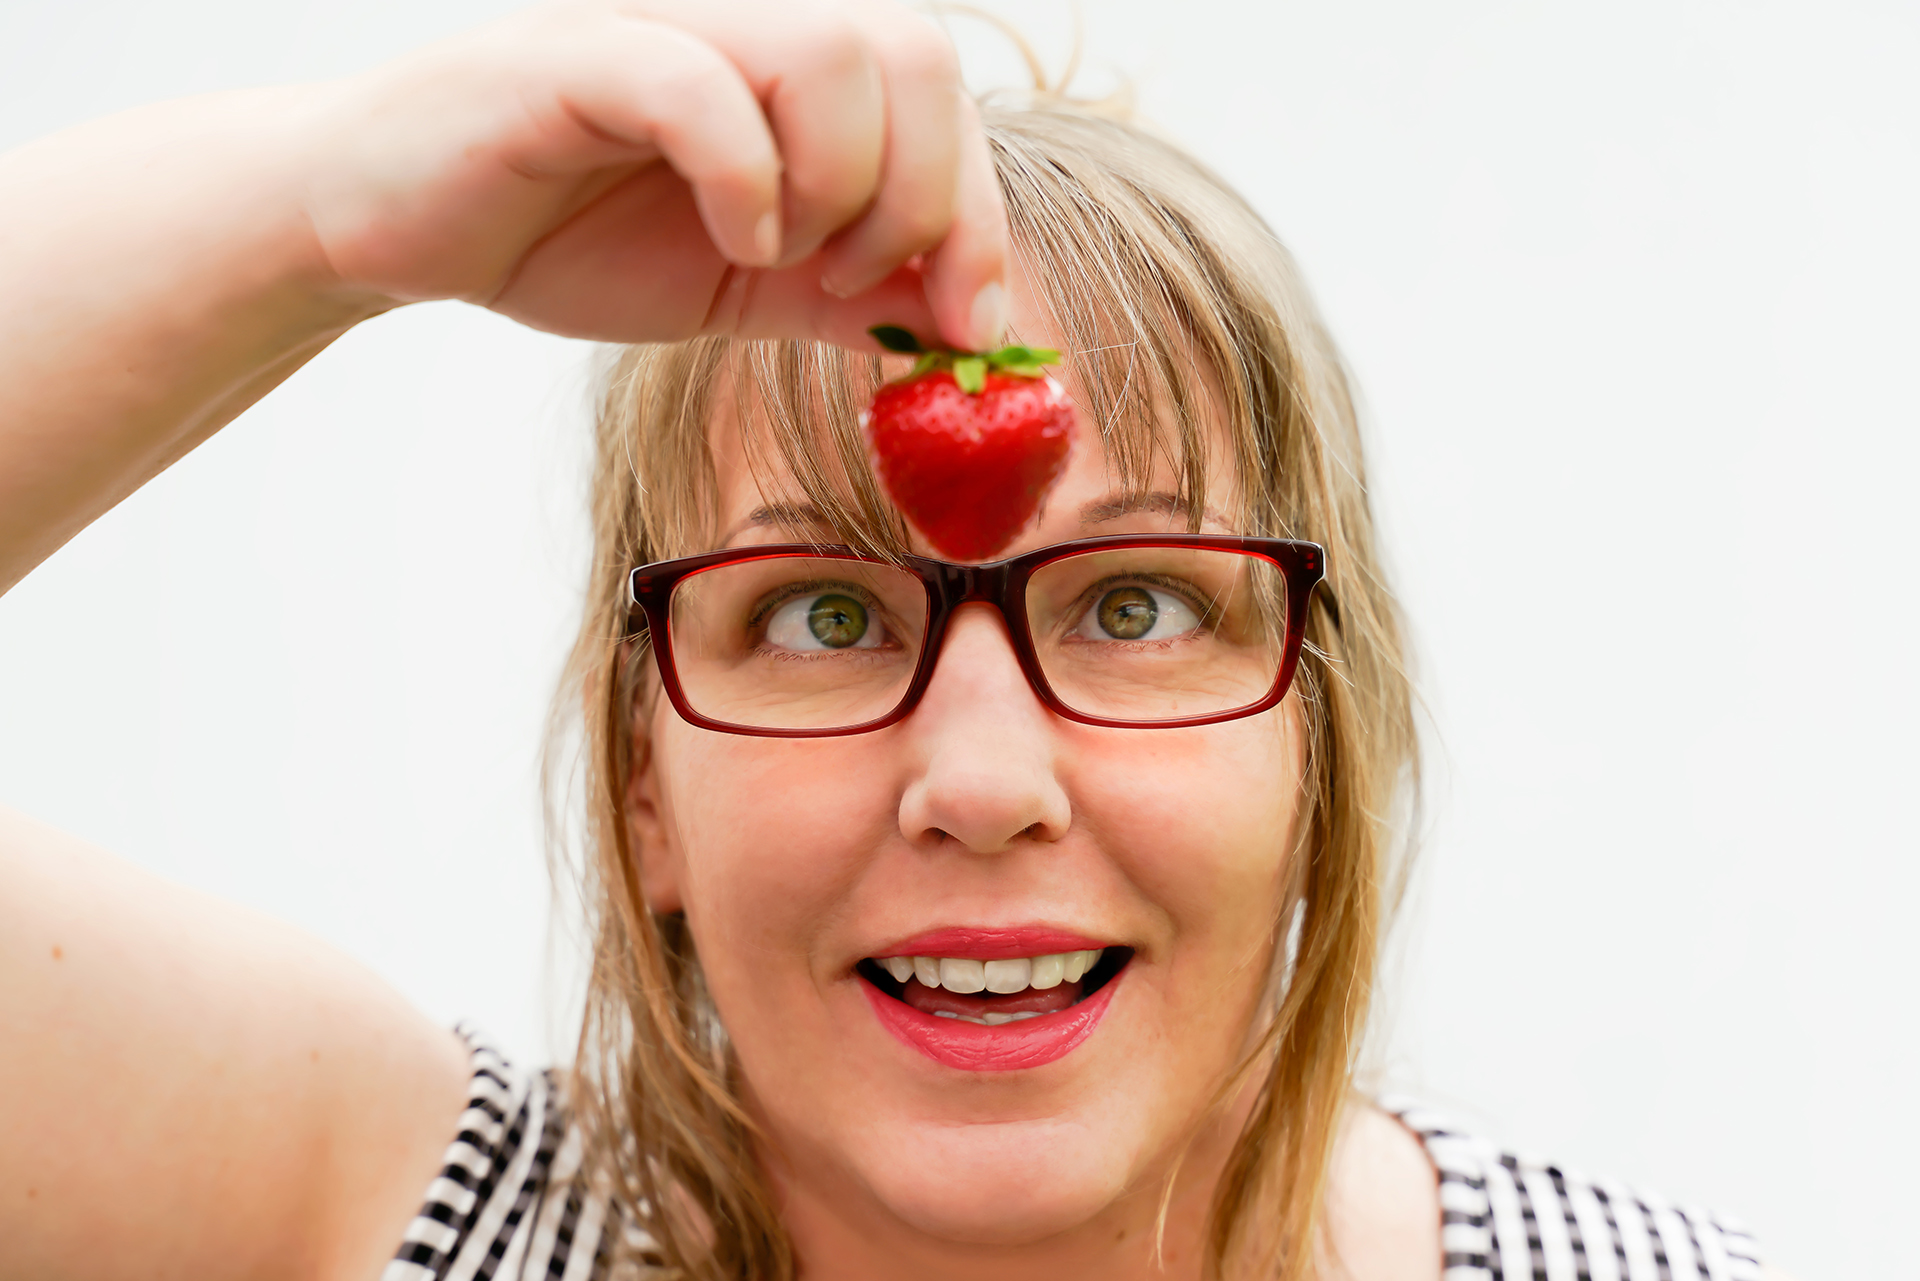 Blond woman holds up a strawberry